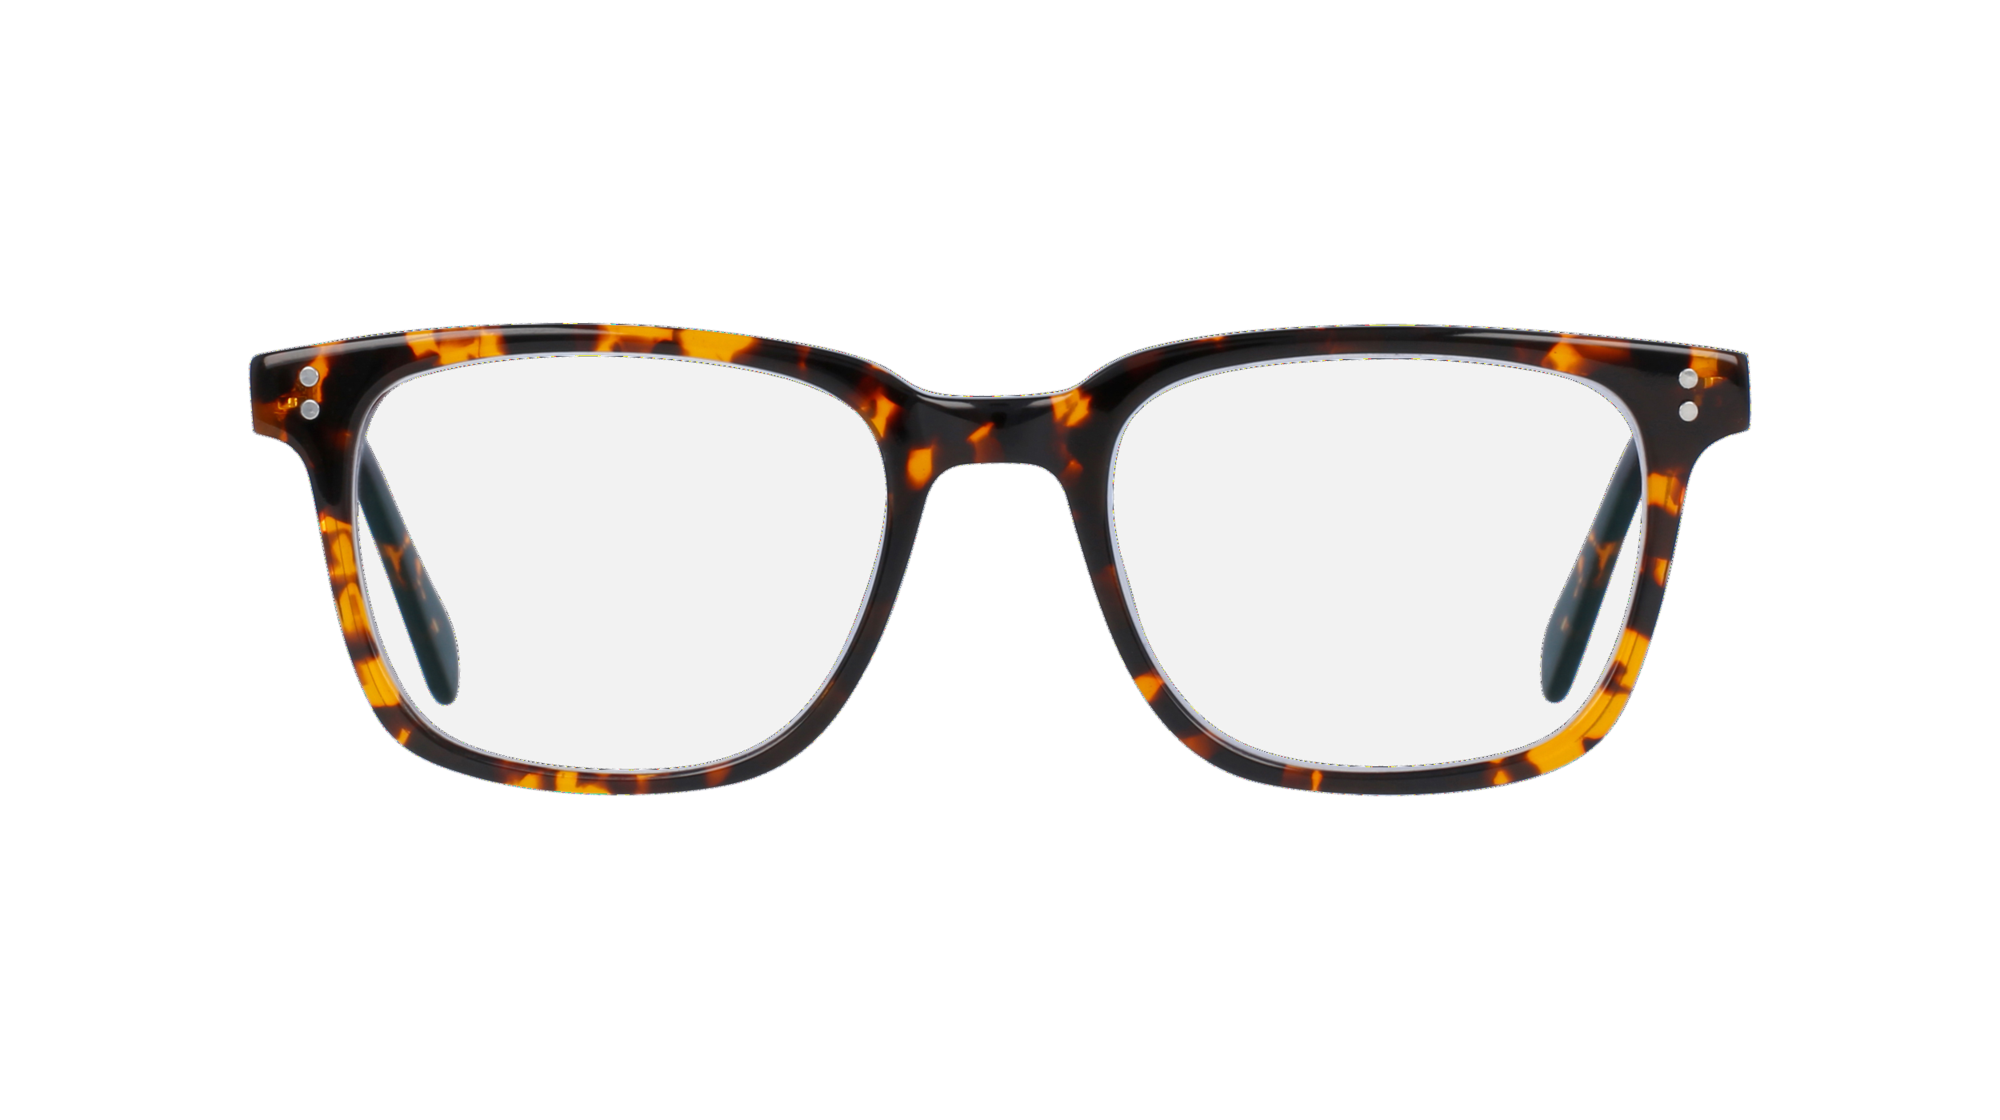 Ambr-Original-Glasses